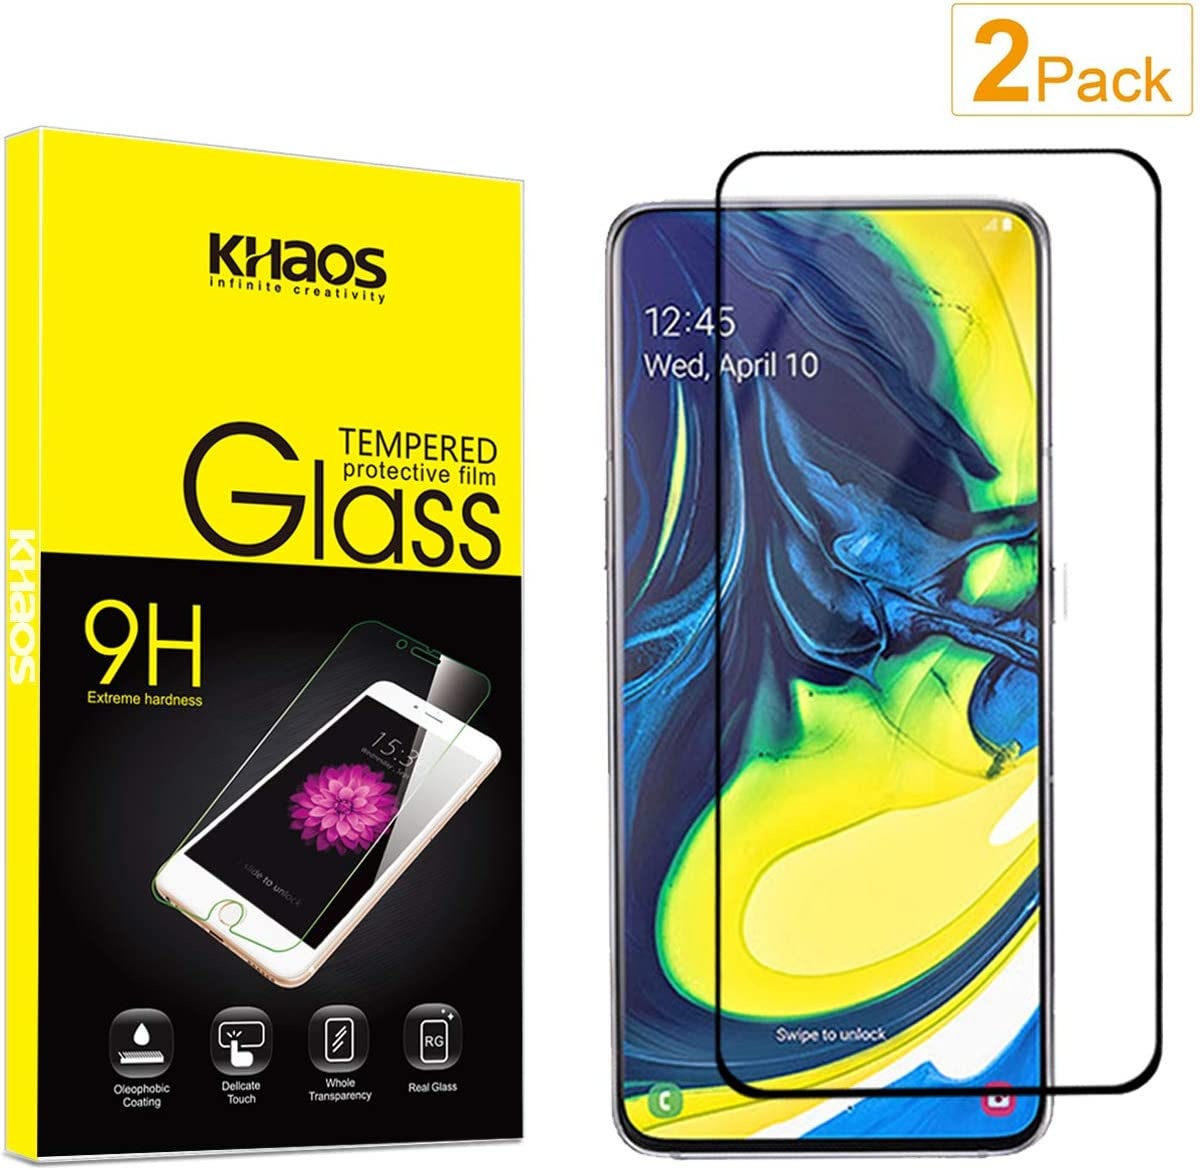 A90 No Retail Package GzPuluz Glass Protector Film 50 PCS Non-Full Matte Frosted Tempered Glass Film for Galaxy A80